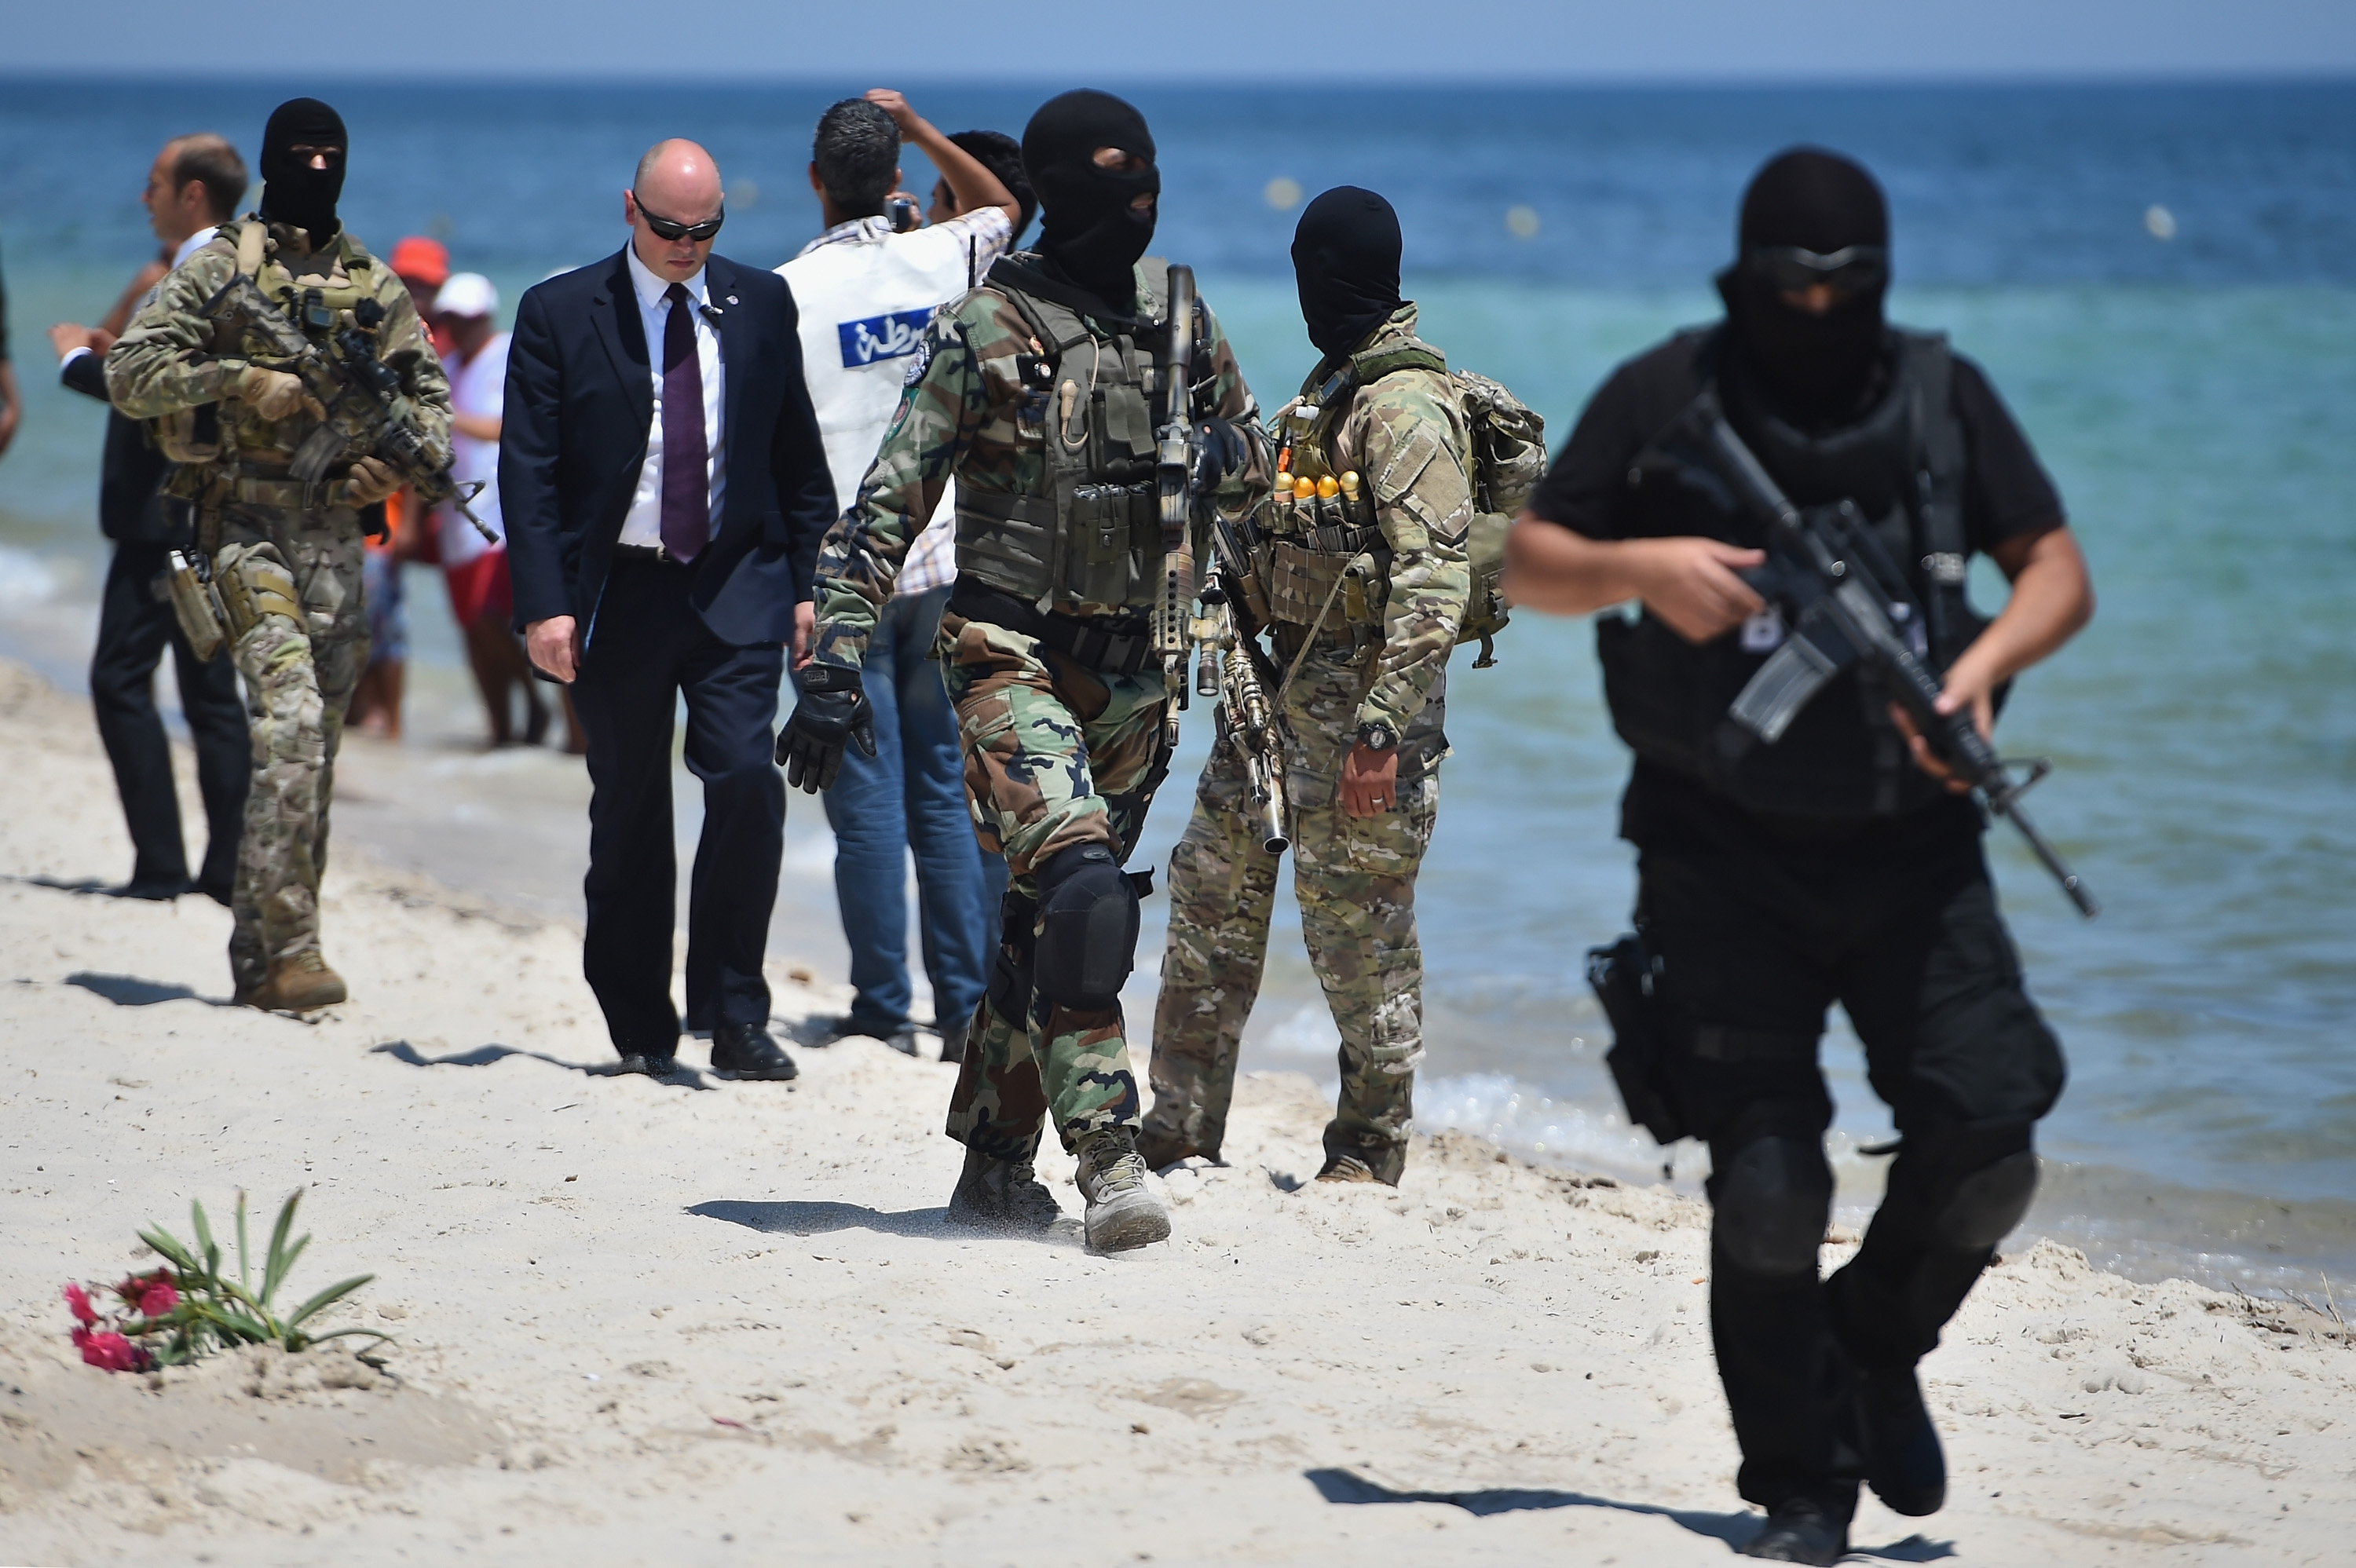 Armed guards patrol Marhaba beach during a visit by British Home Secretary Theresa May at the scene where 39 people were killed on June 29, in Sousse, Tunisia.